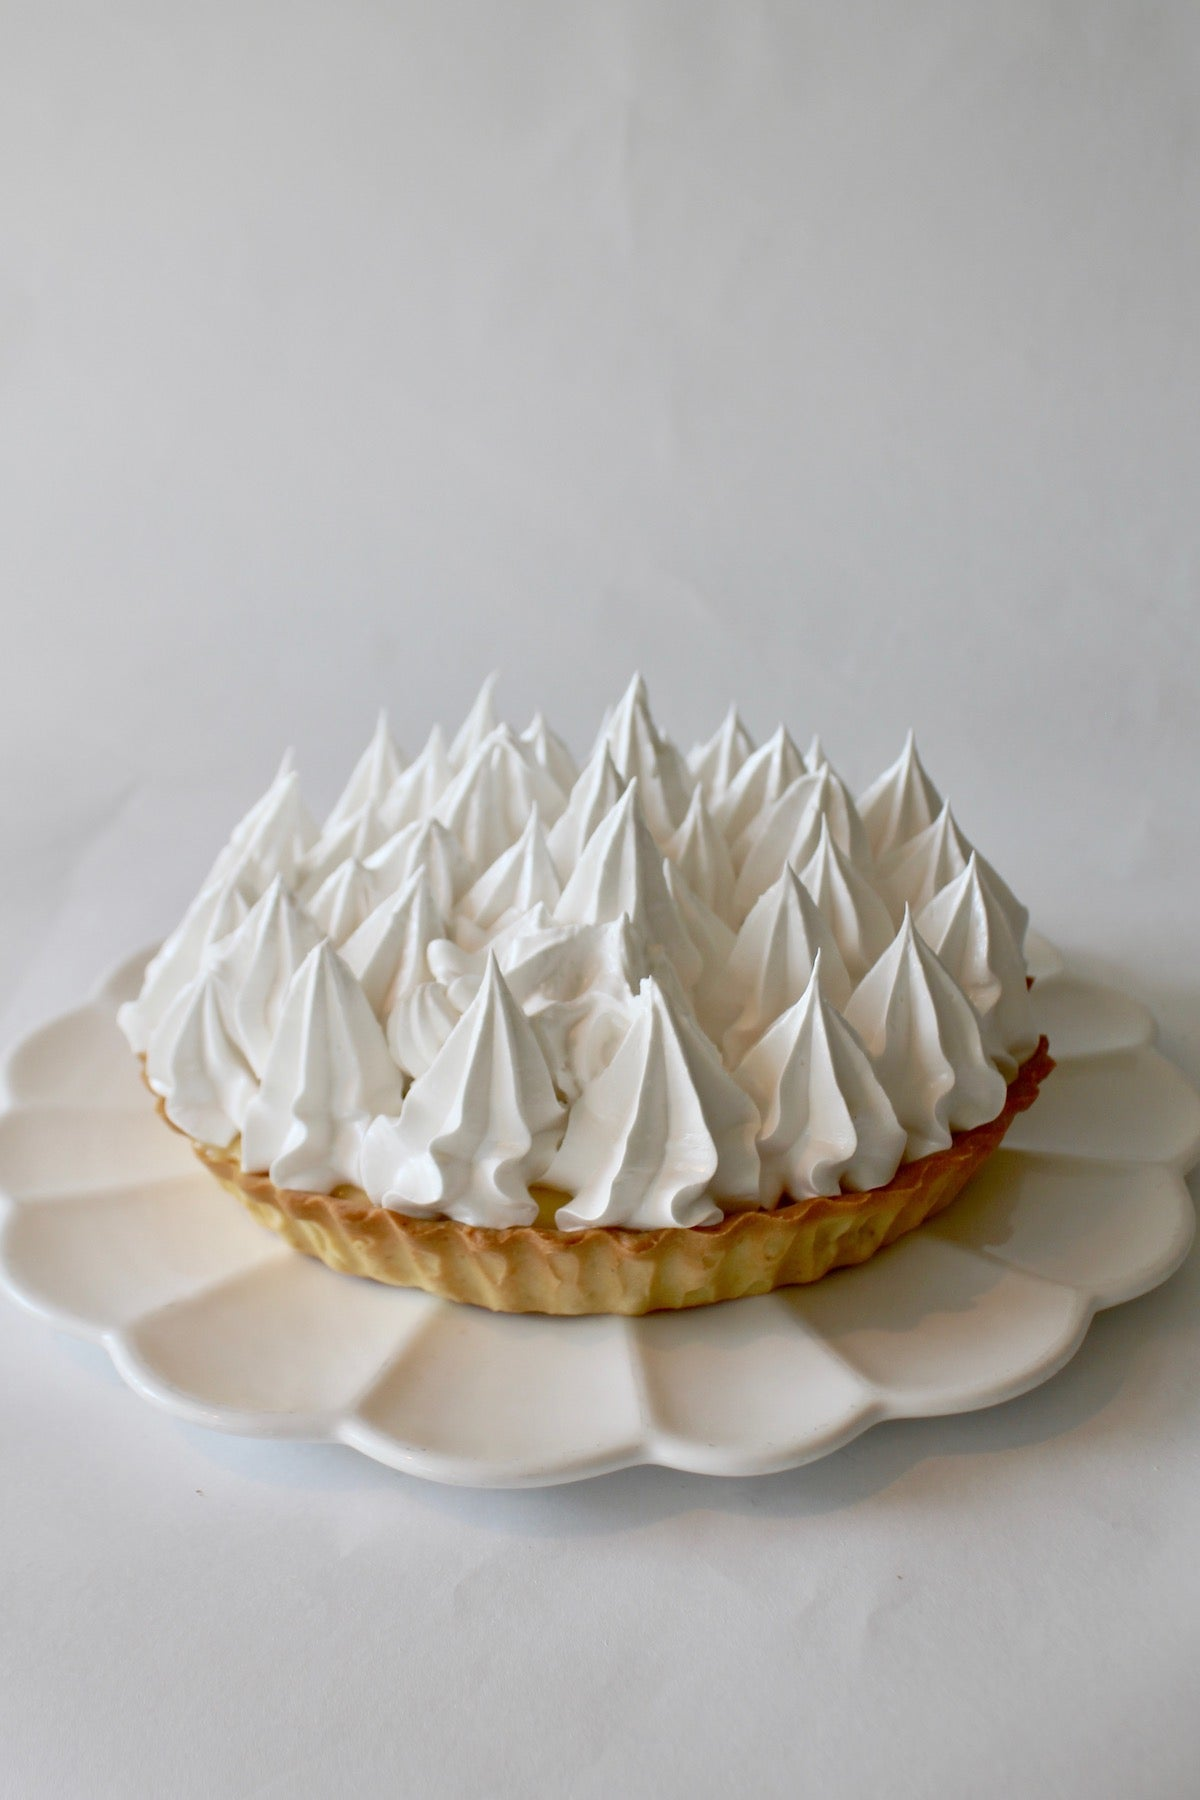 Annapolis (lemon pie)